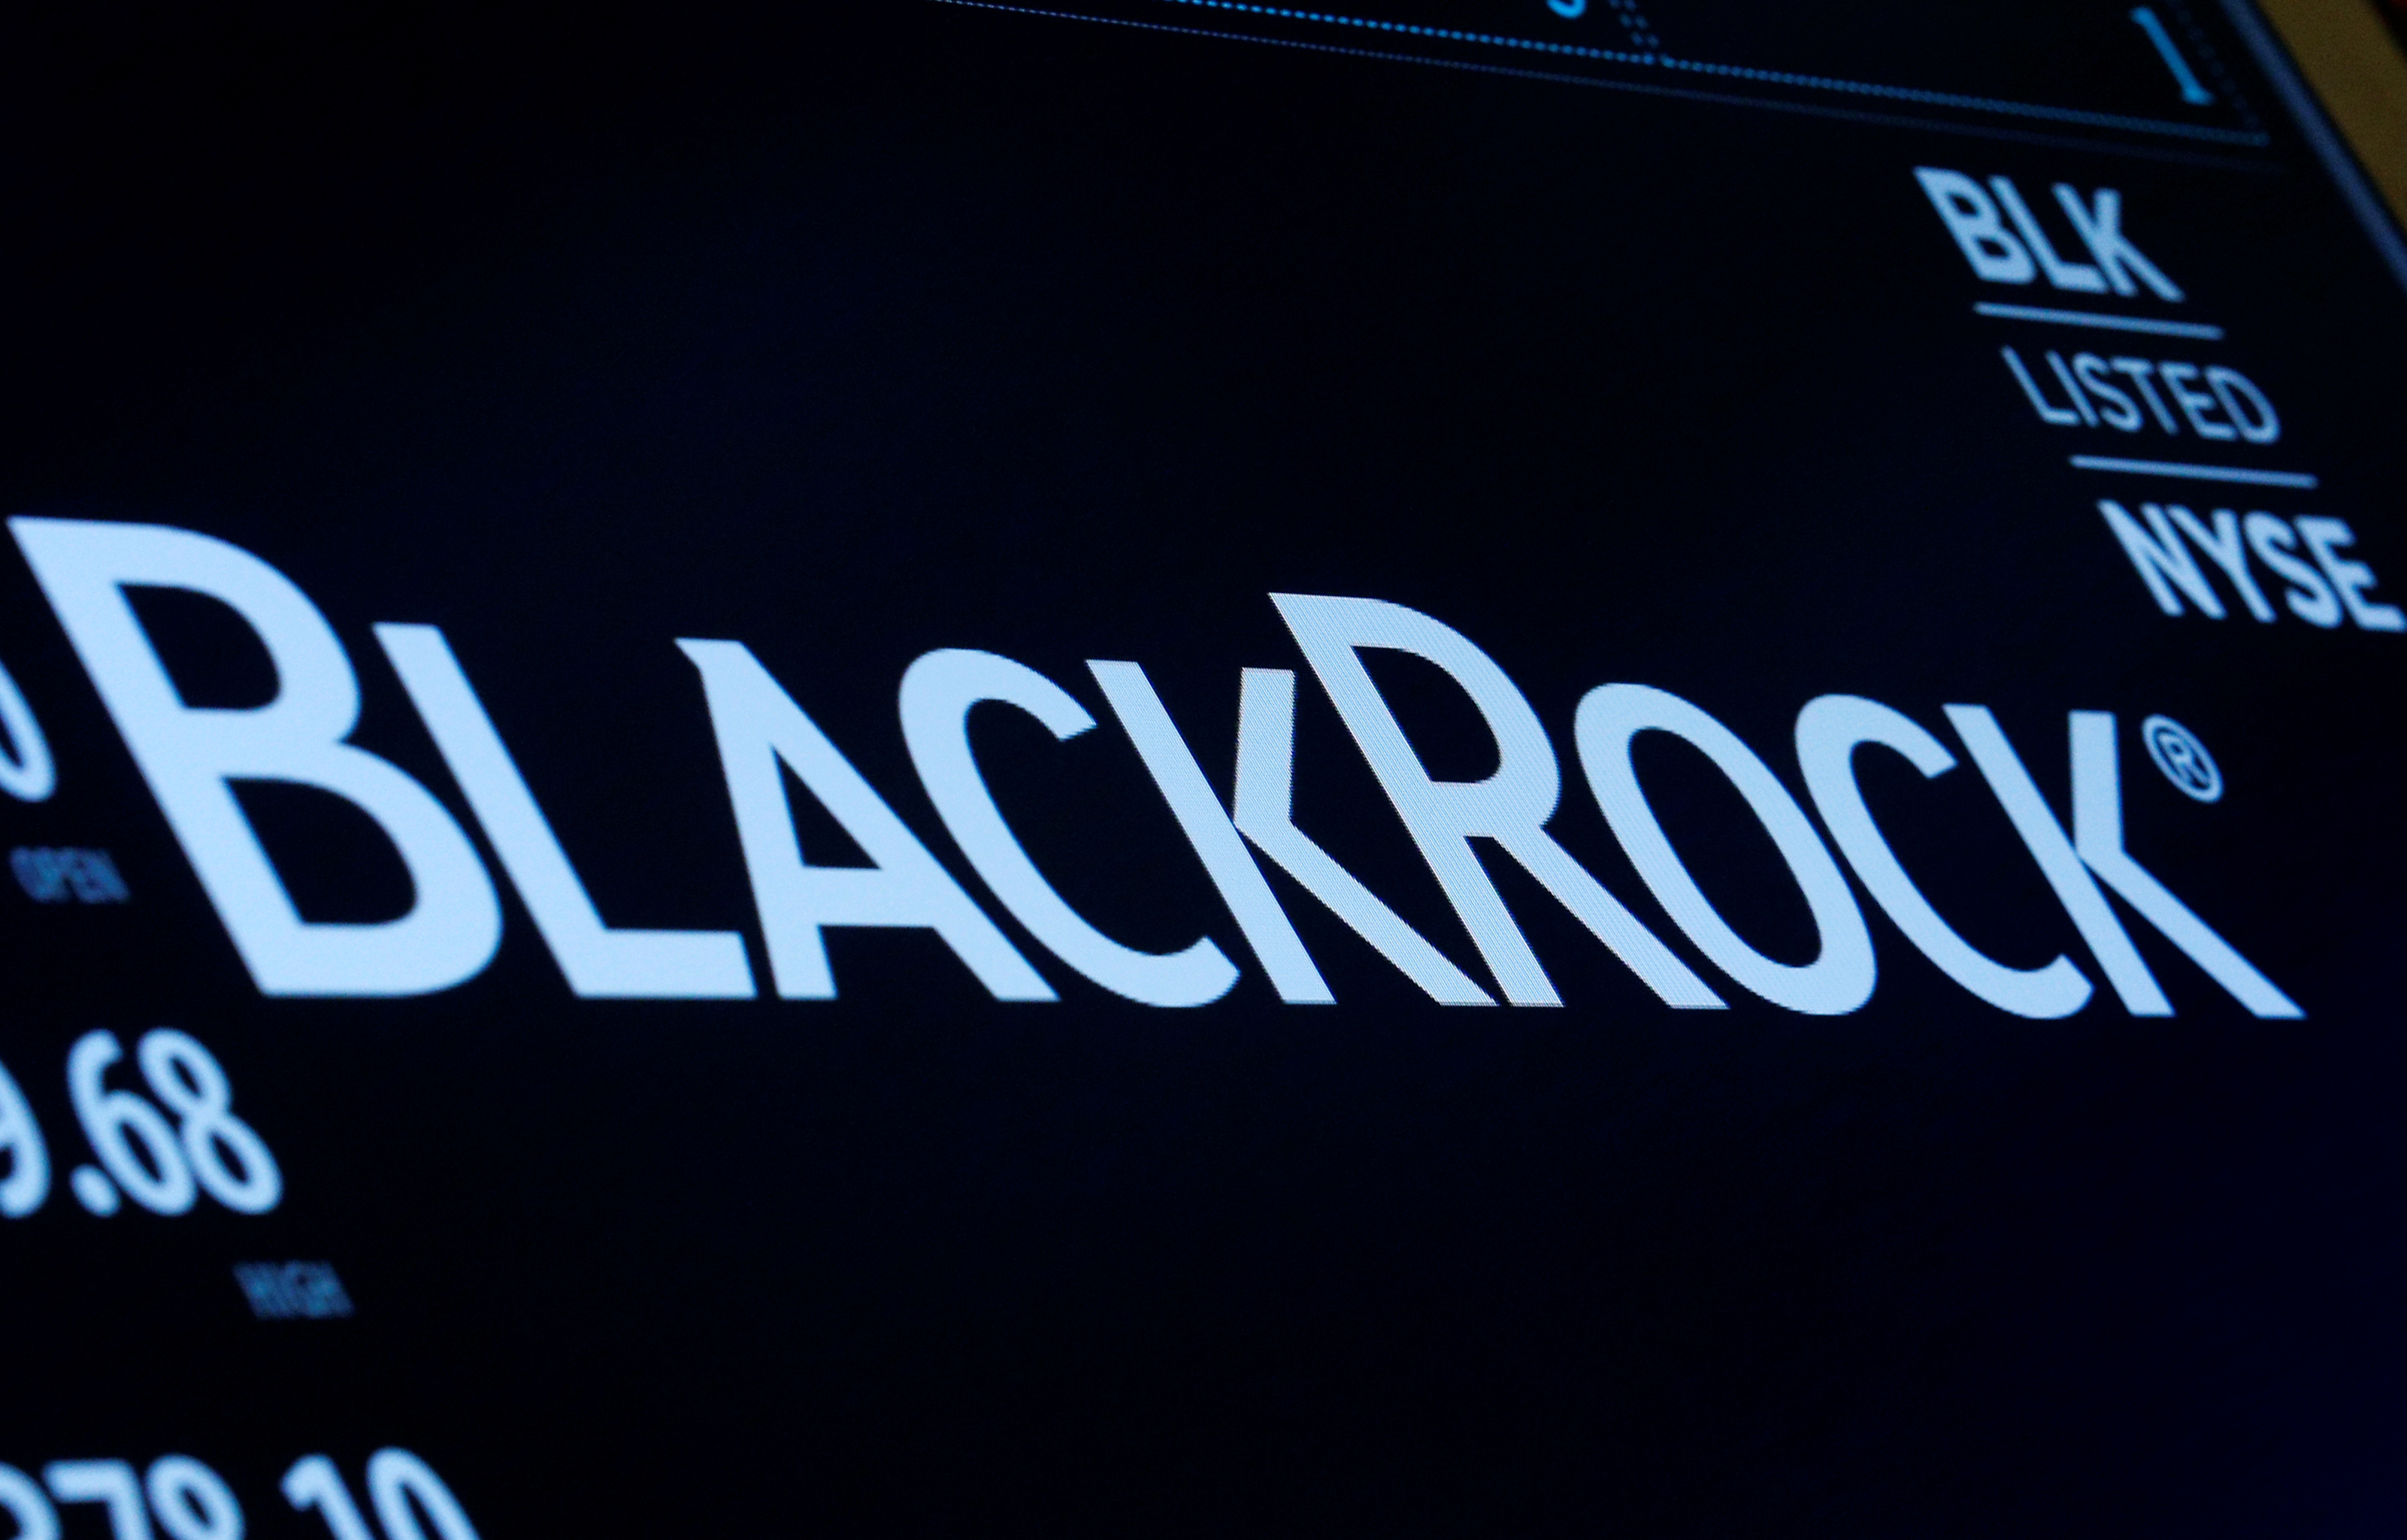 BlackRock, Inc. (BLK) Q4 Earnings Top Expectations As ETF Inflows Surge